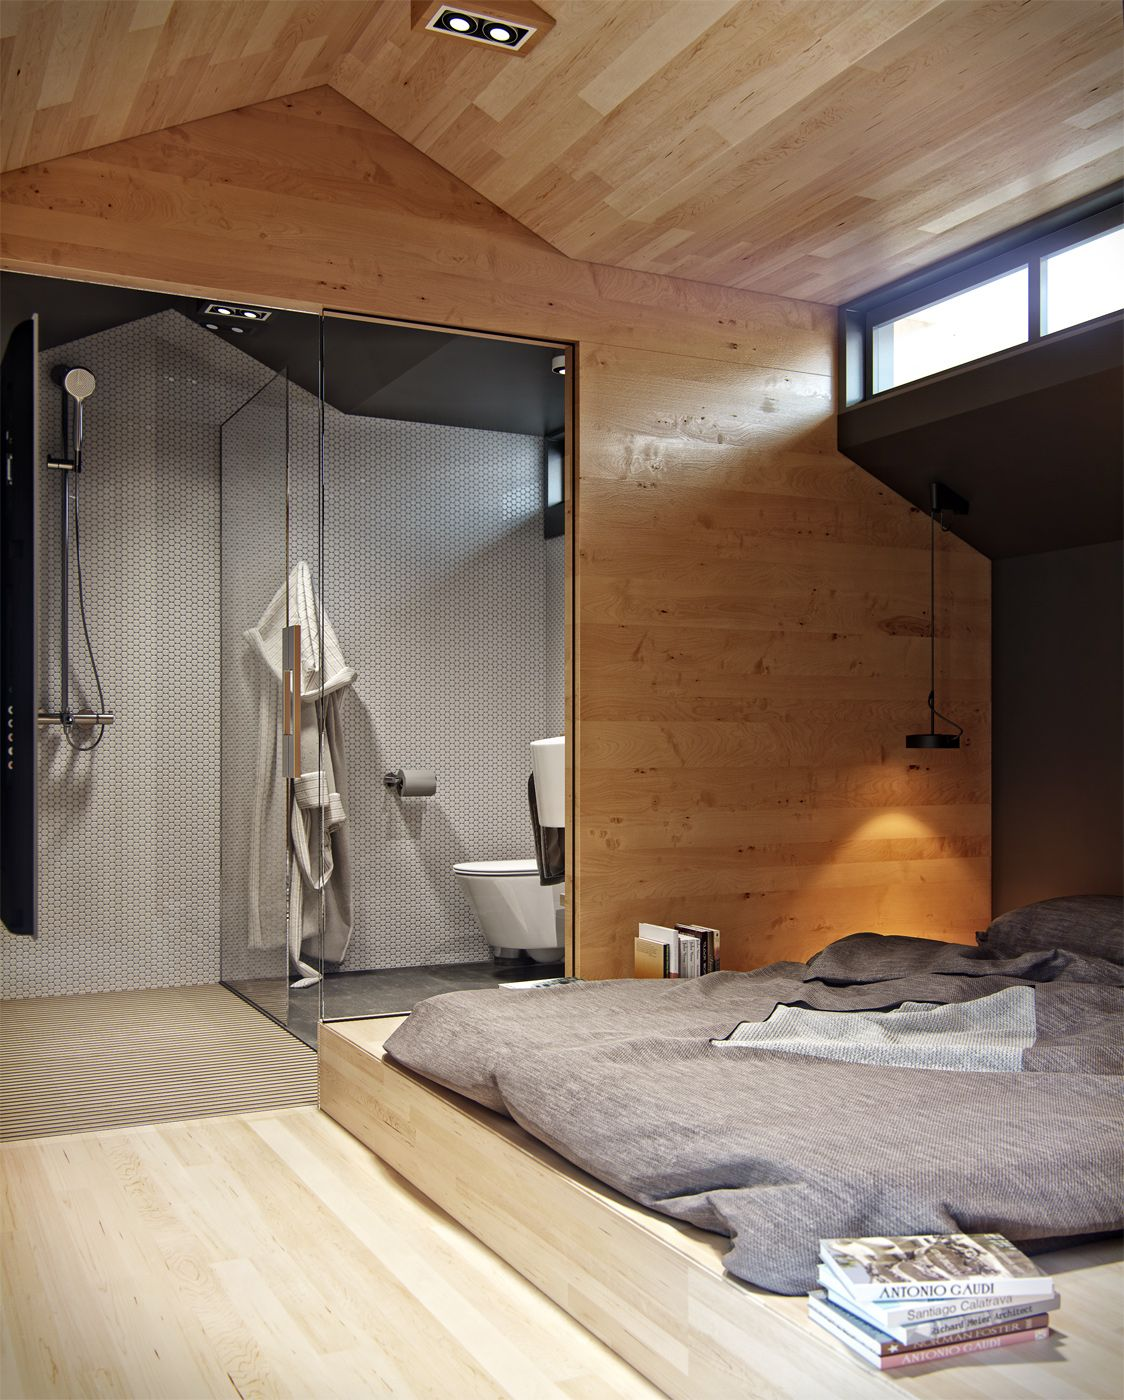 Loft bedroom with bathroom  Tiny Loft Space Apartment  Home u Rooms  Pinterest  Tiny loft